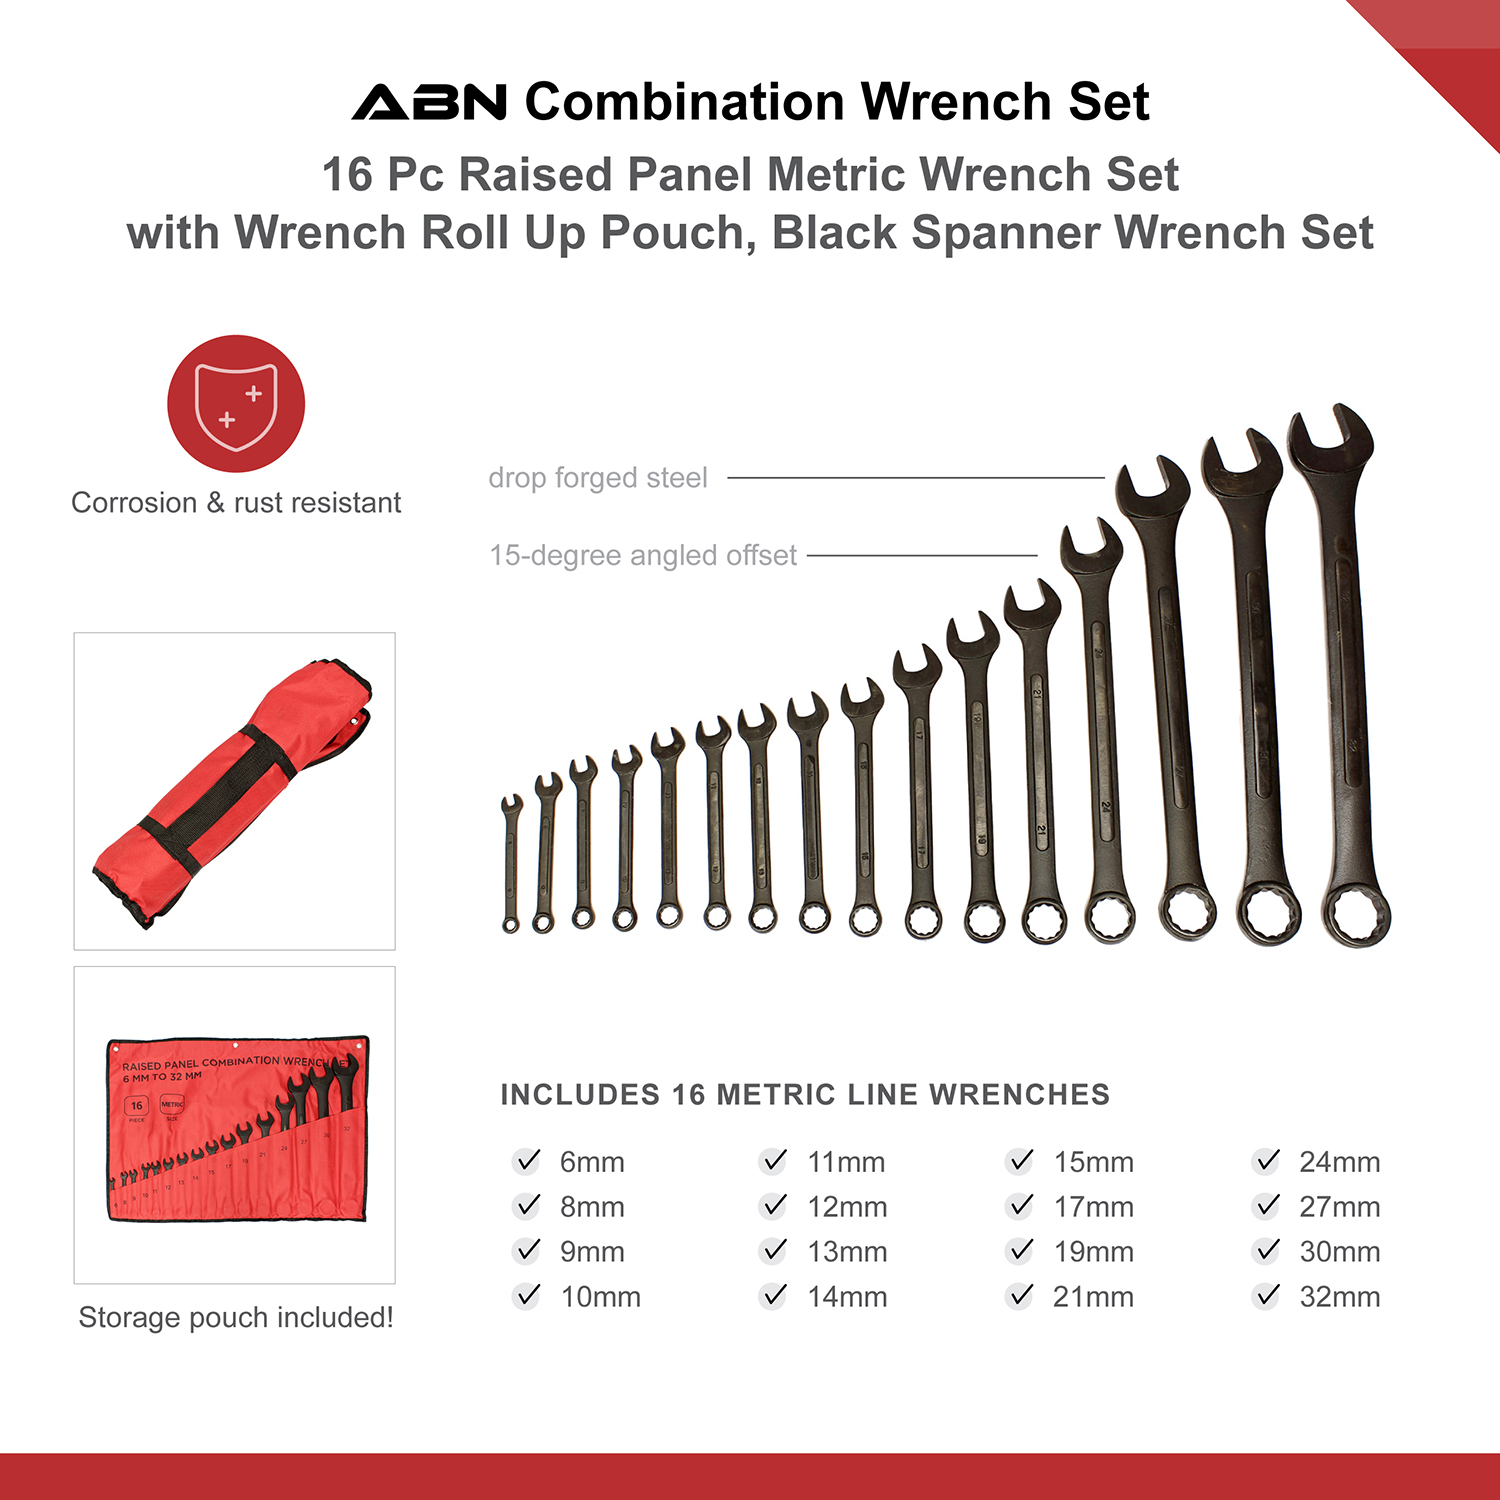 ABN-Combination-Wrench-Set-16-Pc-Raised-Panel-Jumbo-Wrench-Set-Black miniature 9